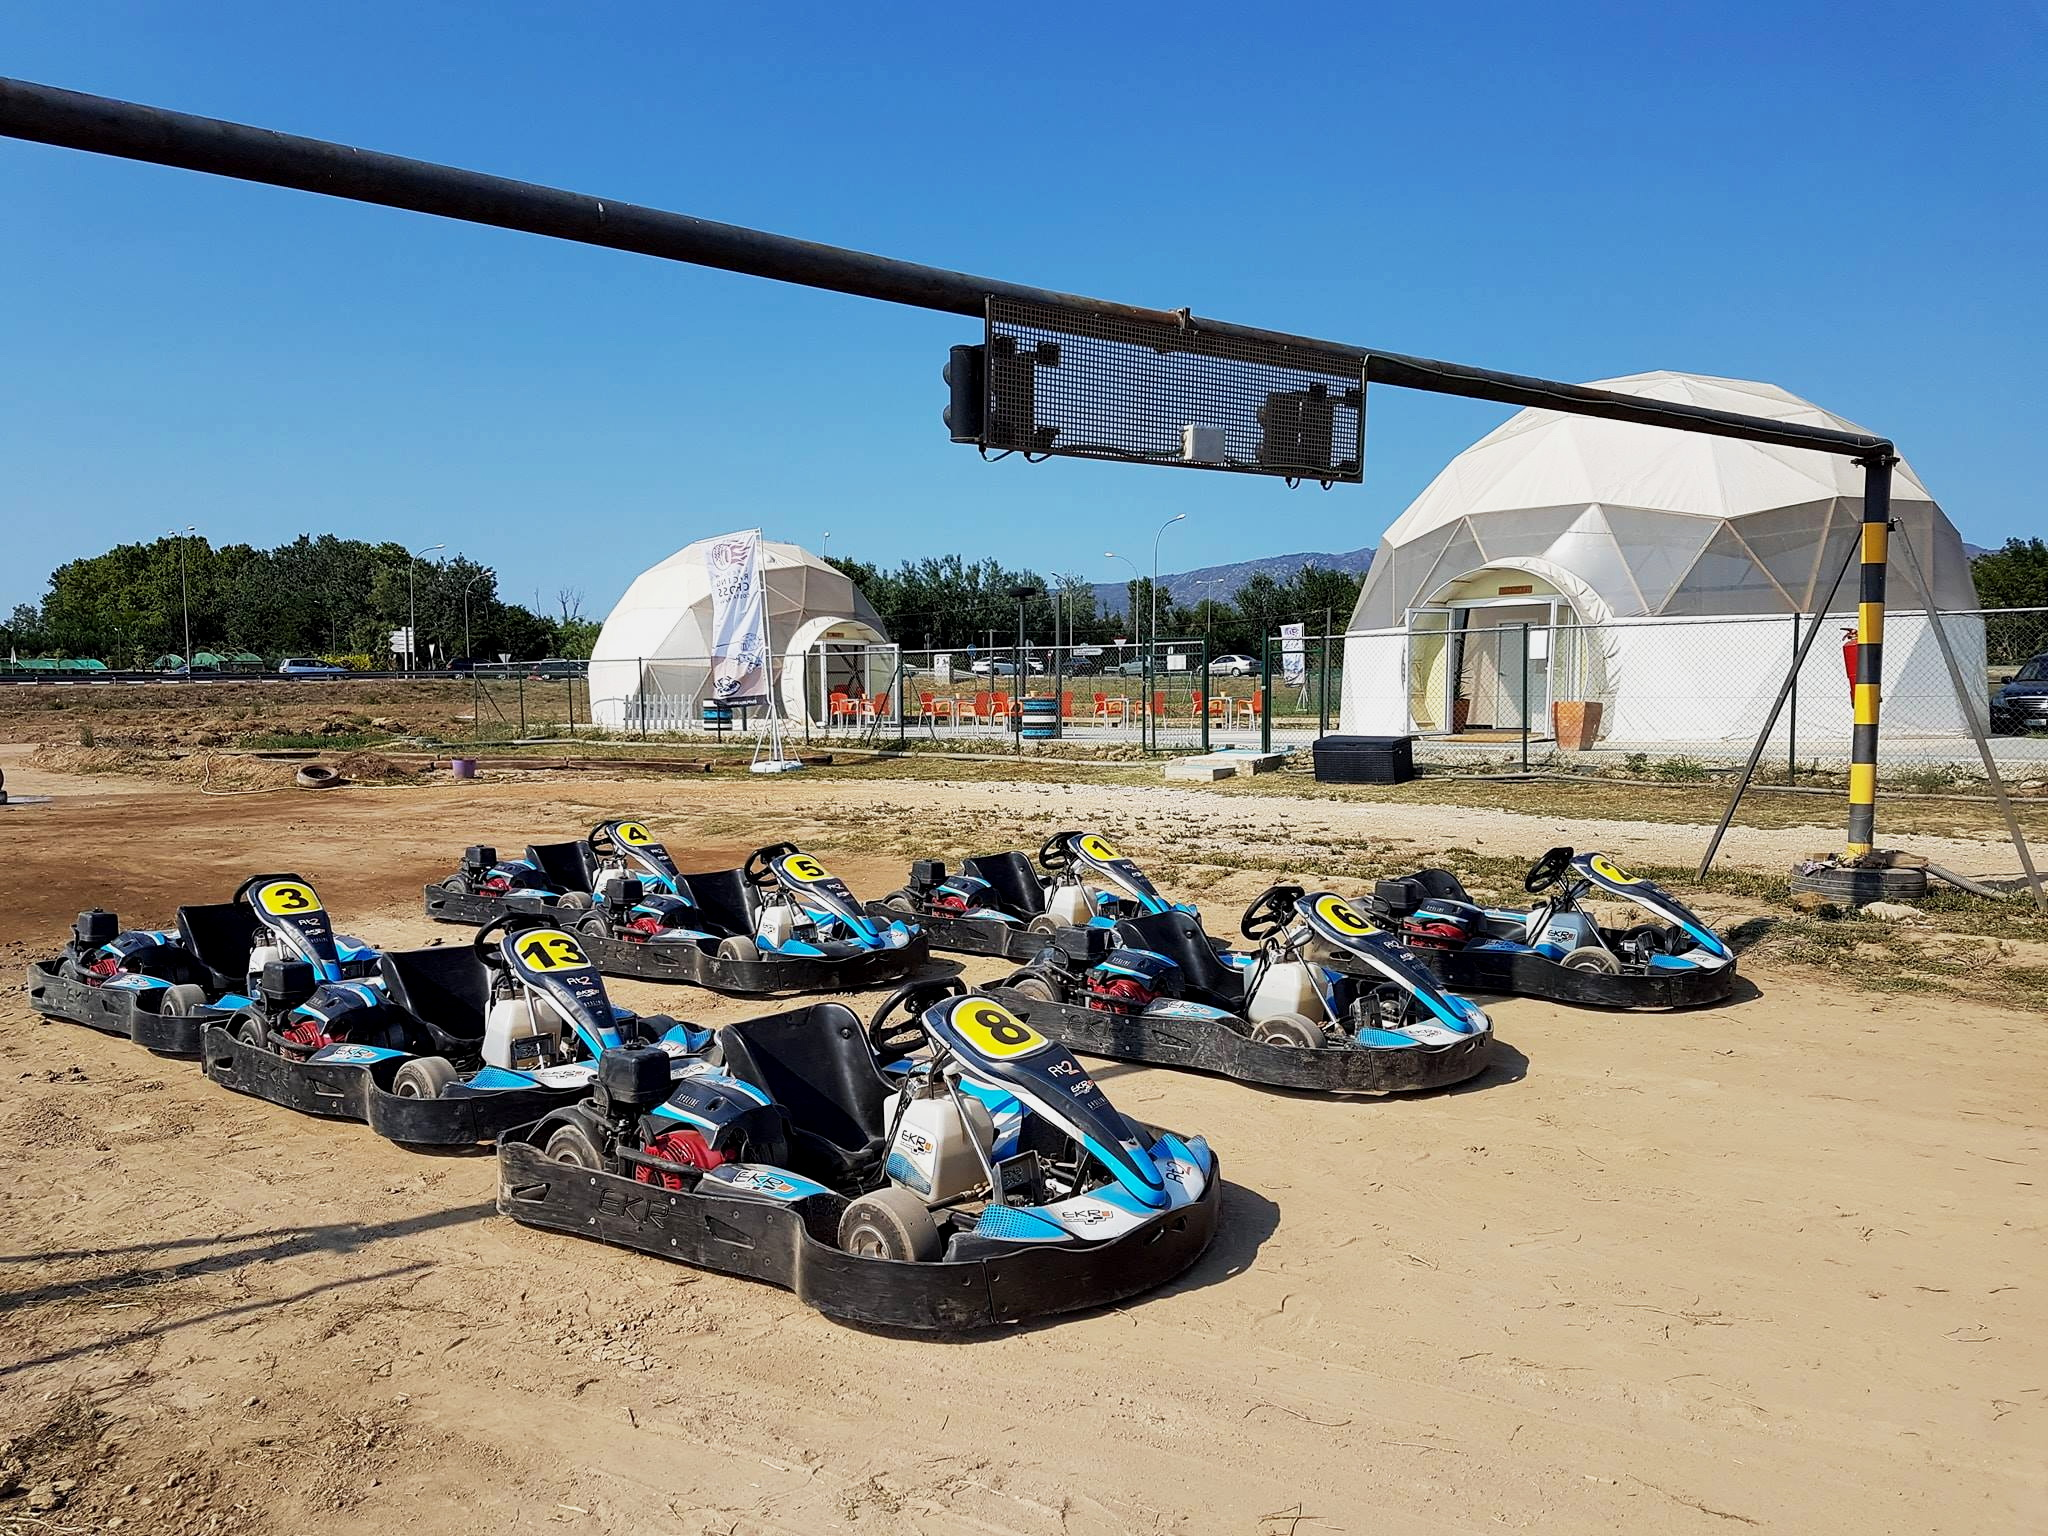 Circuito Racing Cross Costa Brava Ø8m & 10m | Spain, Girona